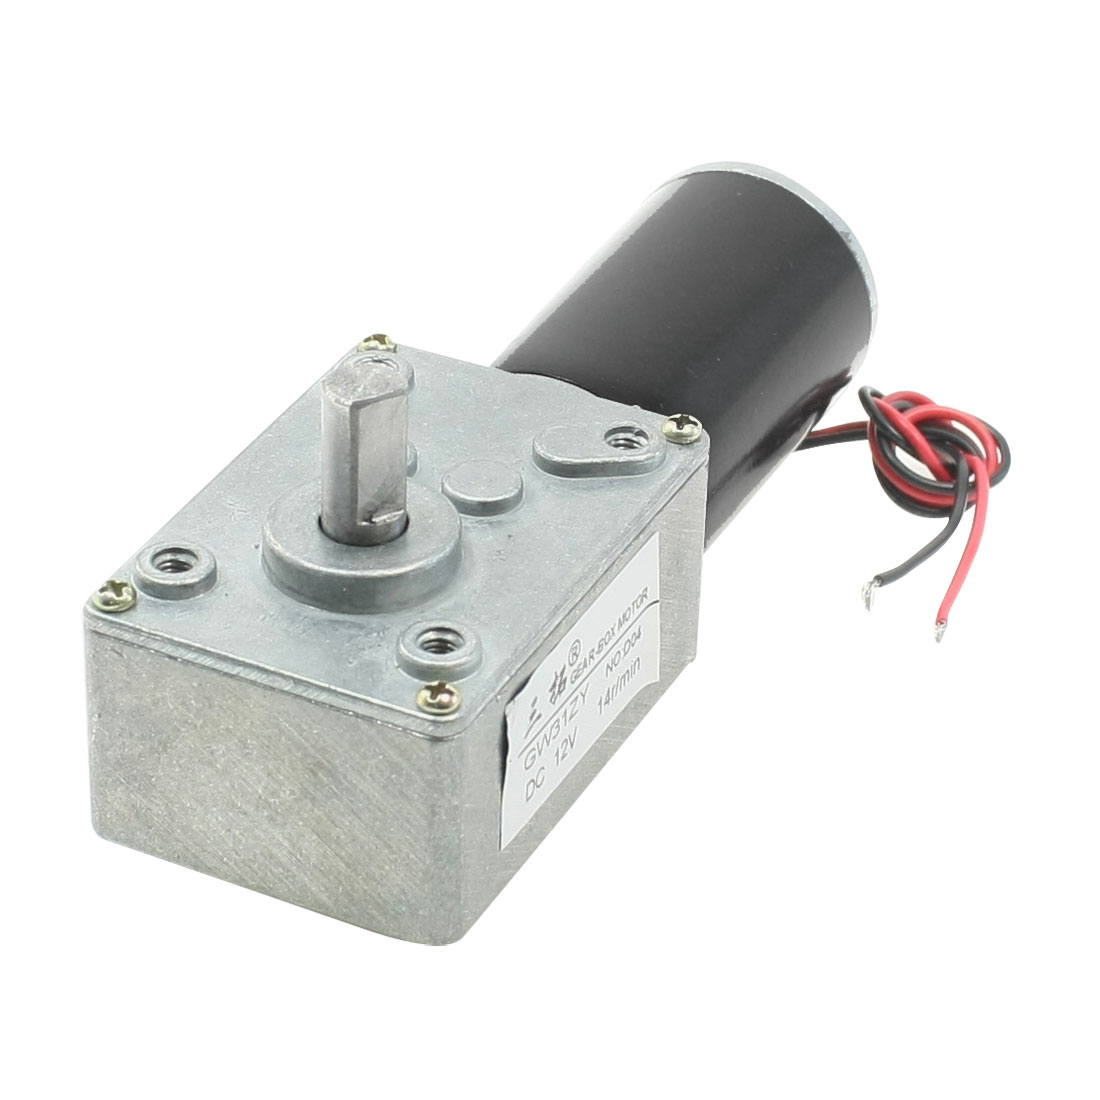 8mm-Dia-Shaft-Rectangle-Permanent-Planet-Gear-Box-Motor-14RPM-DC-12V